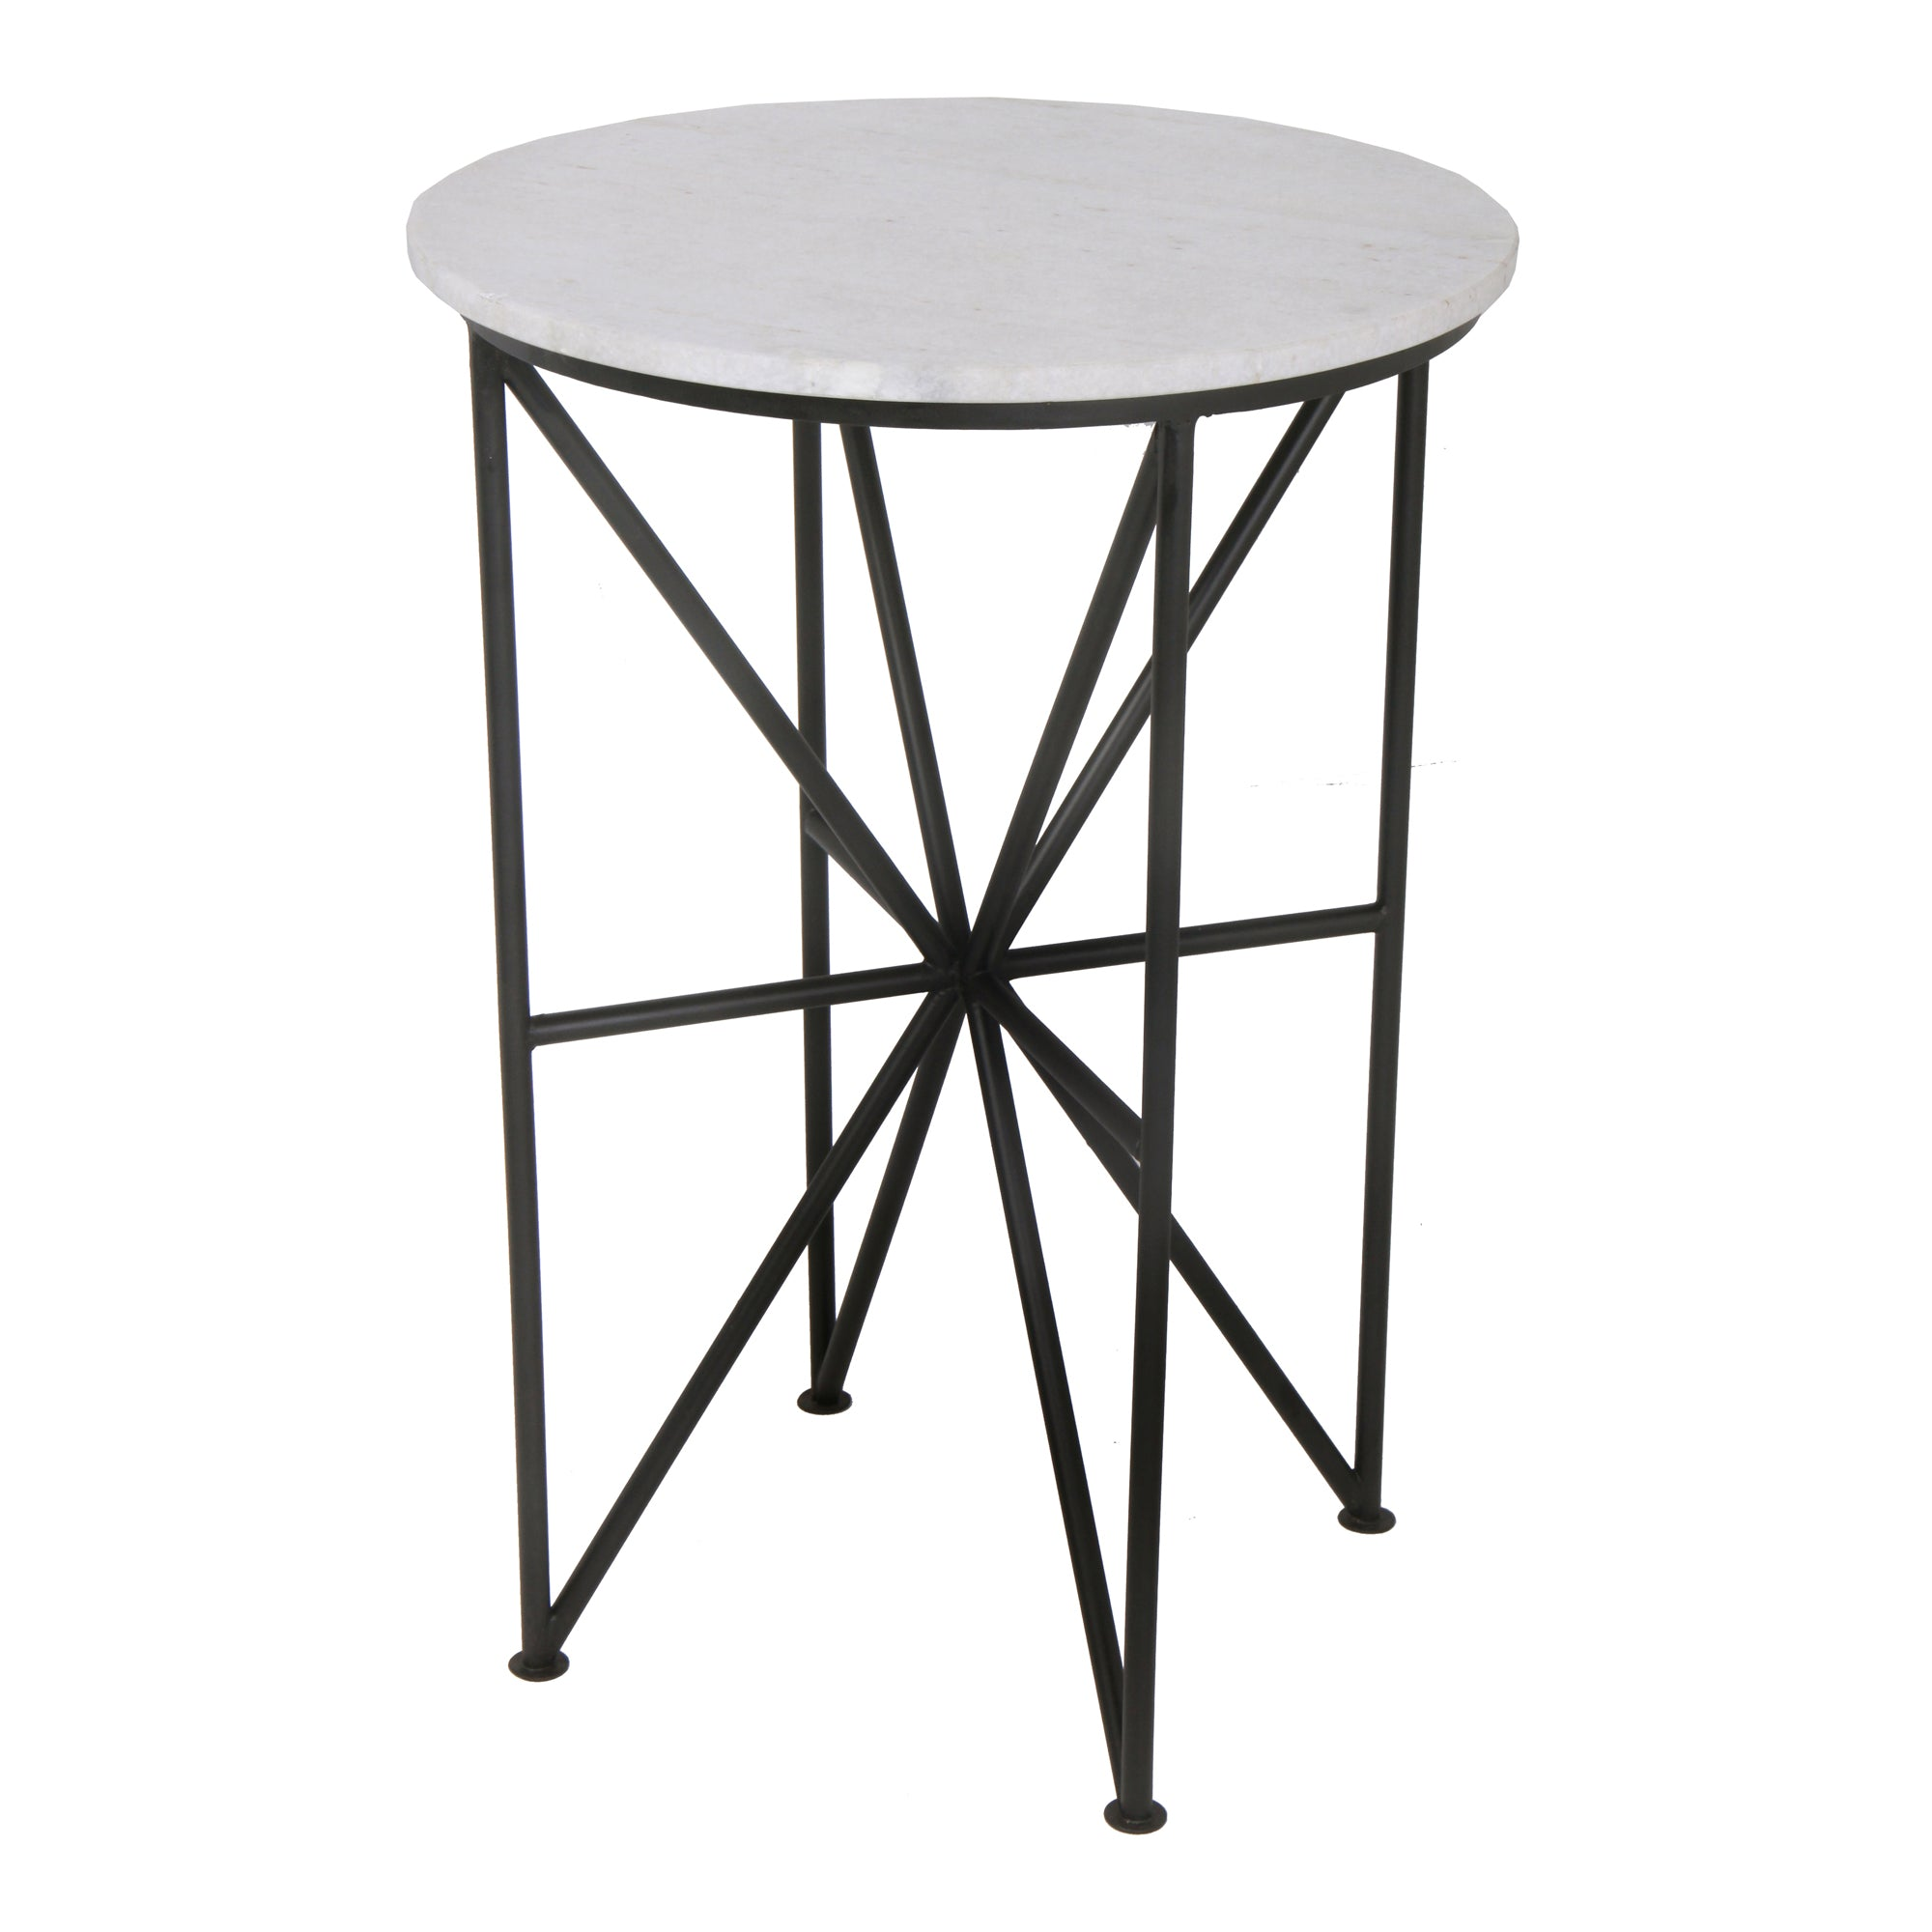 Quadrant Marble End Table / Side Table